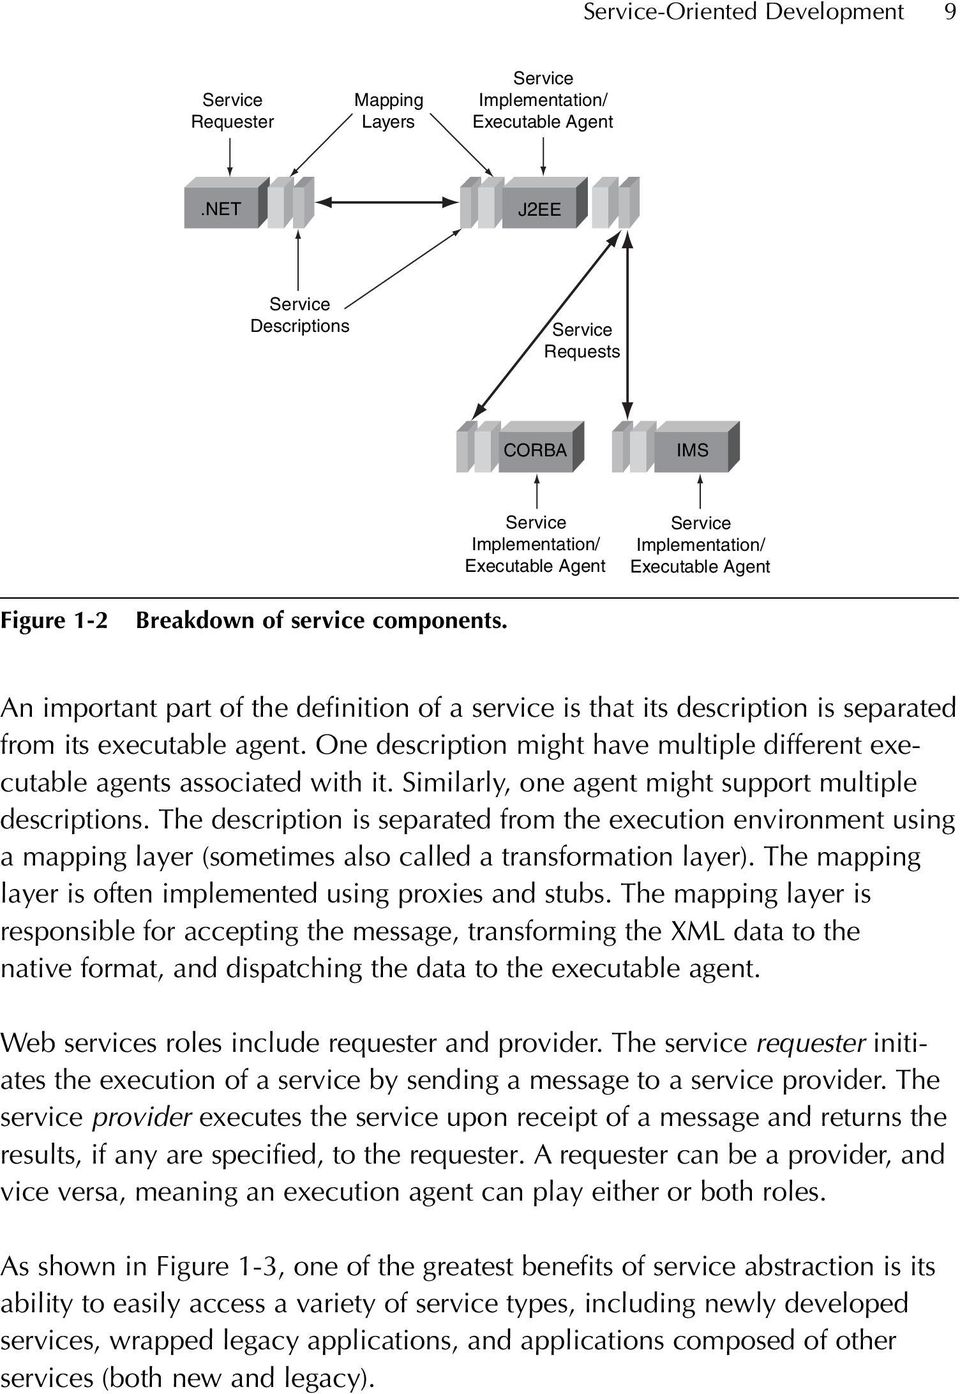 An important part of the definition of a service is that its description is separated from its executable agent. One description might have multiple different executable agents associated with it.